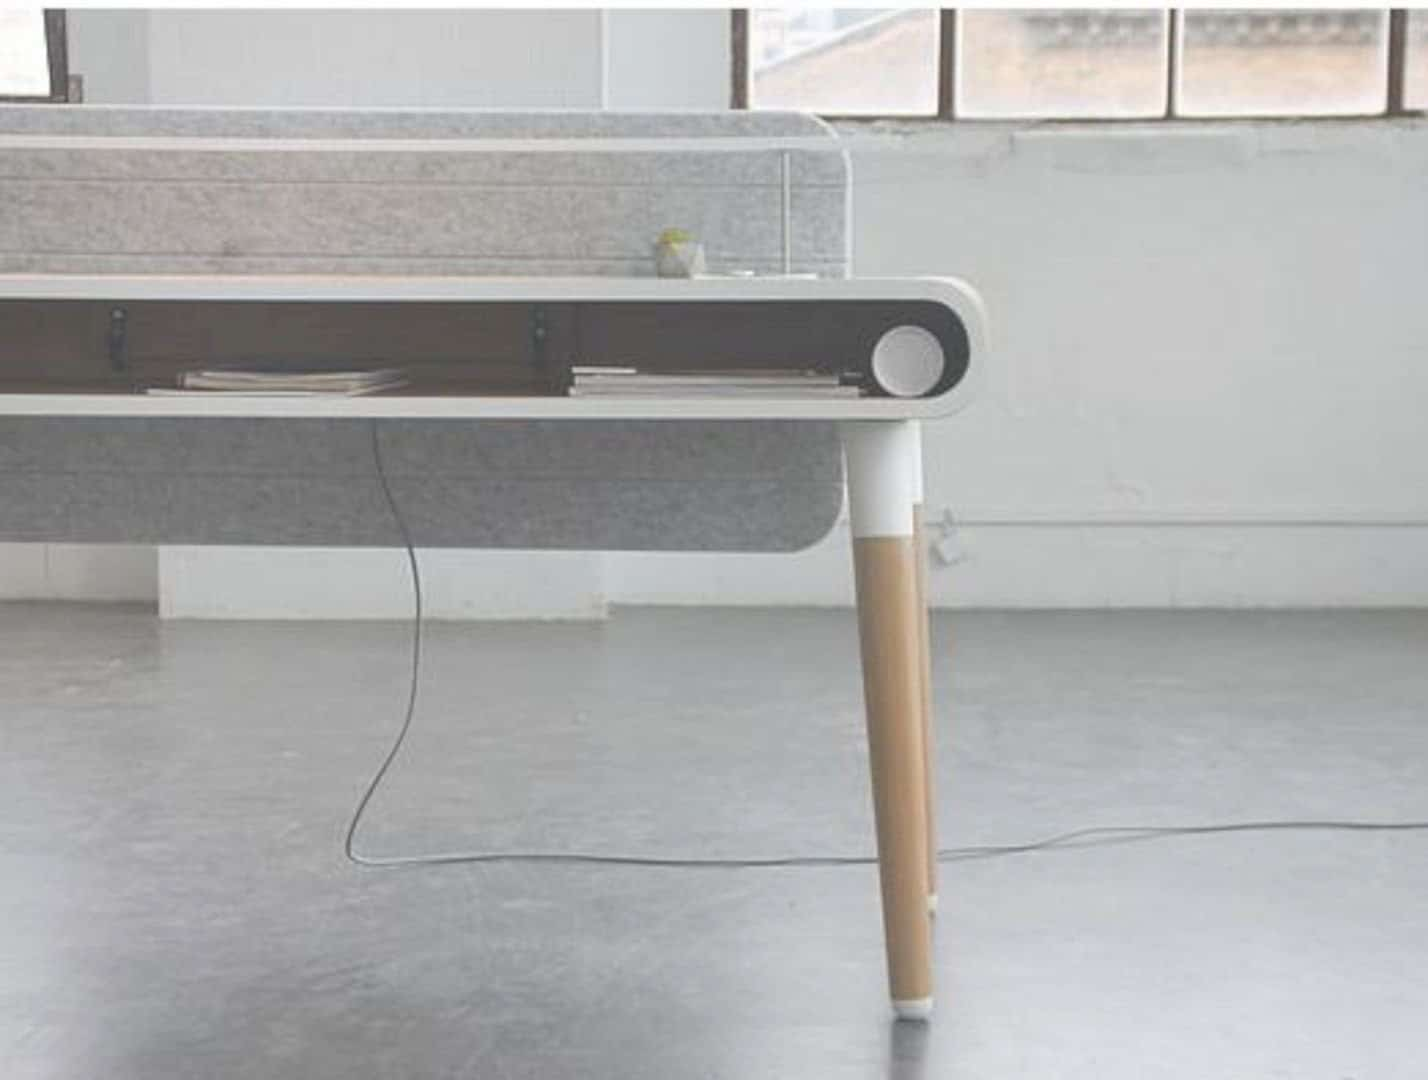 Köllen Eget: A Functional and Smart Work Desk for Your Workspace